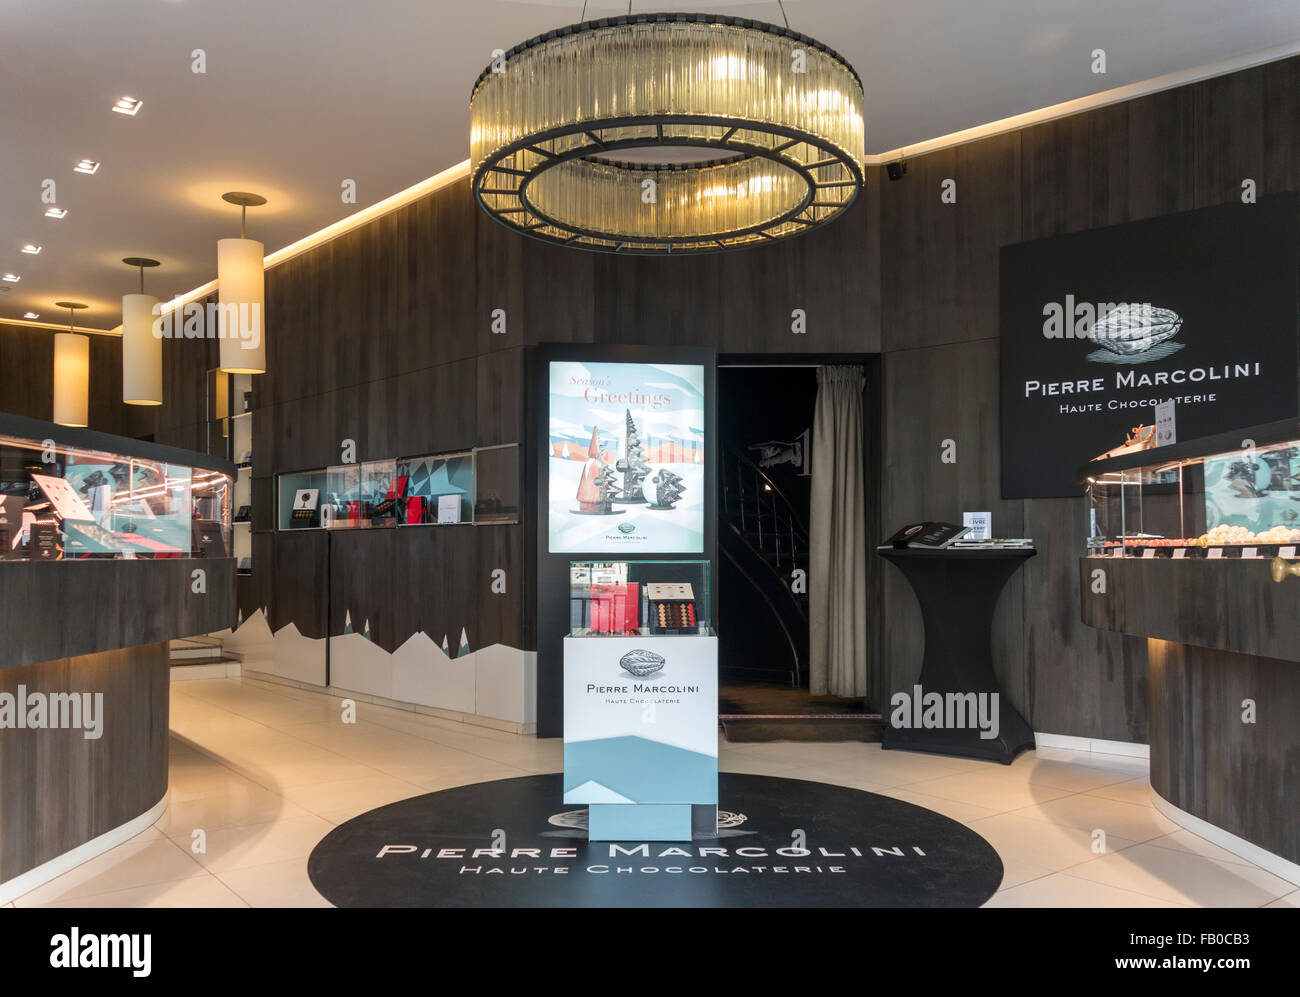 Brussels Belgium. Interior of Chocolatier Pierre Marcolini. Upscale, most expensive, exquisite artisan Belgian chocolates. - Stock Image